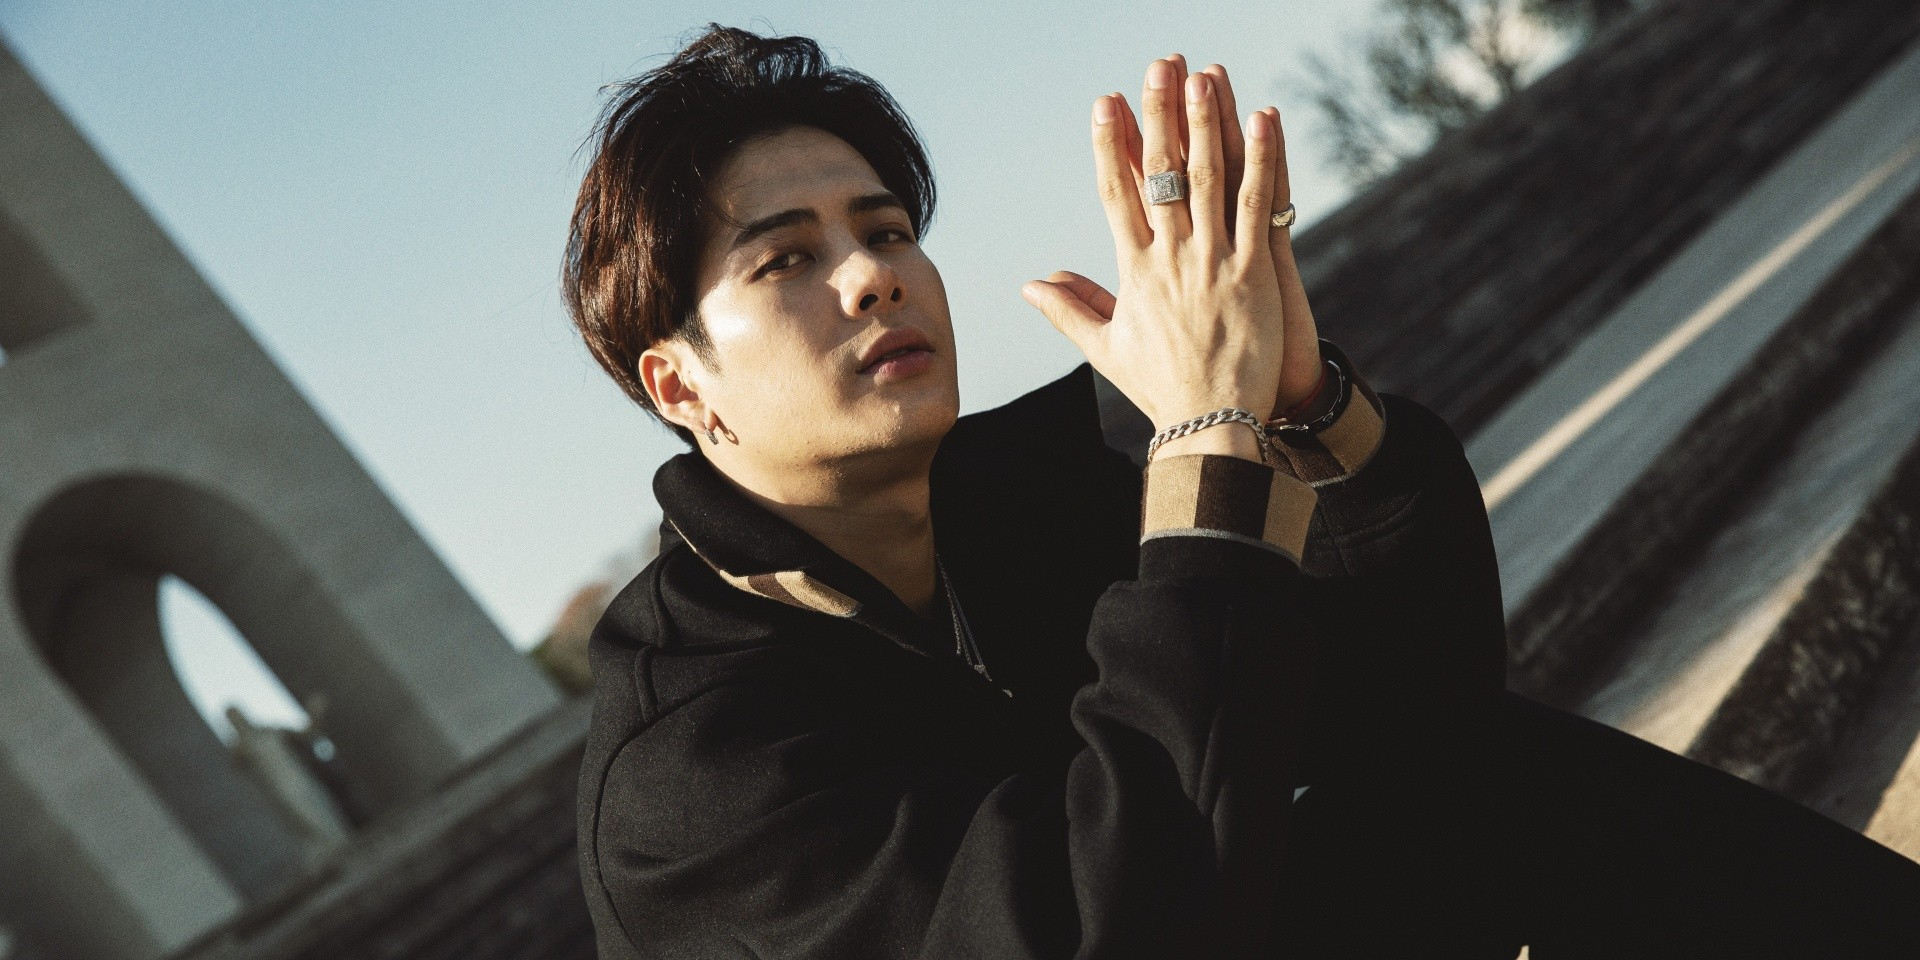 GOT7's Jackson Wang unveils new single 'Bullet to the Heart' and music video